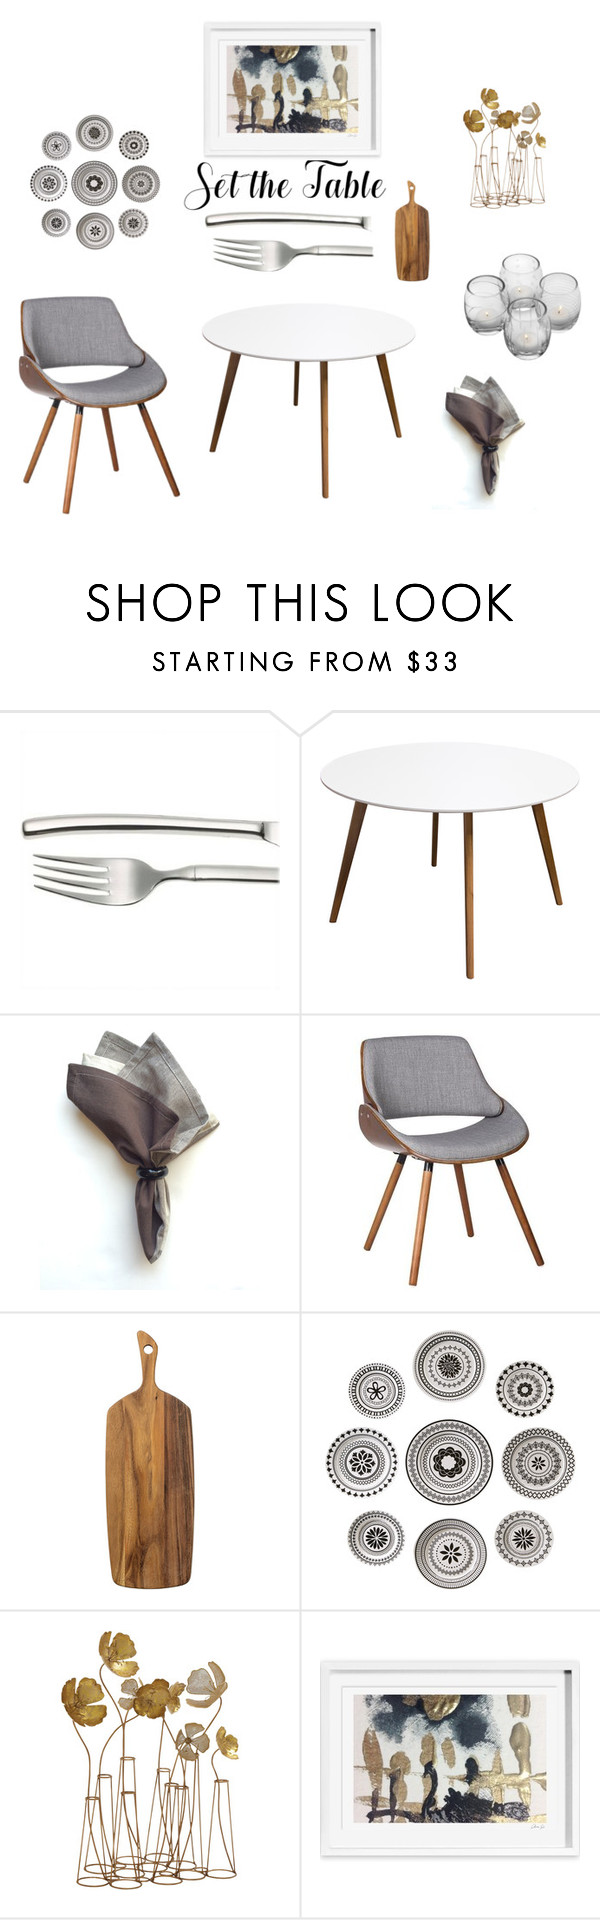 """""""Set the Table - cool grey"""" by shistyle ❤ liked on Polyvore featuring interior, interiors, interior design, home, home decor, interior decorating, Diamond Sofa, WALL and setthetable"""